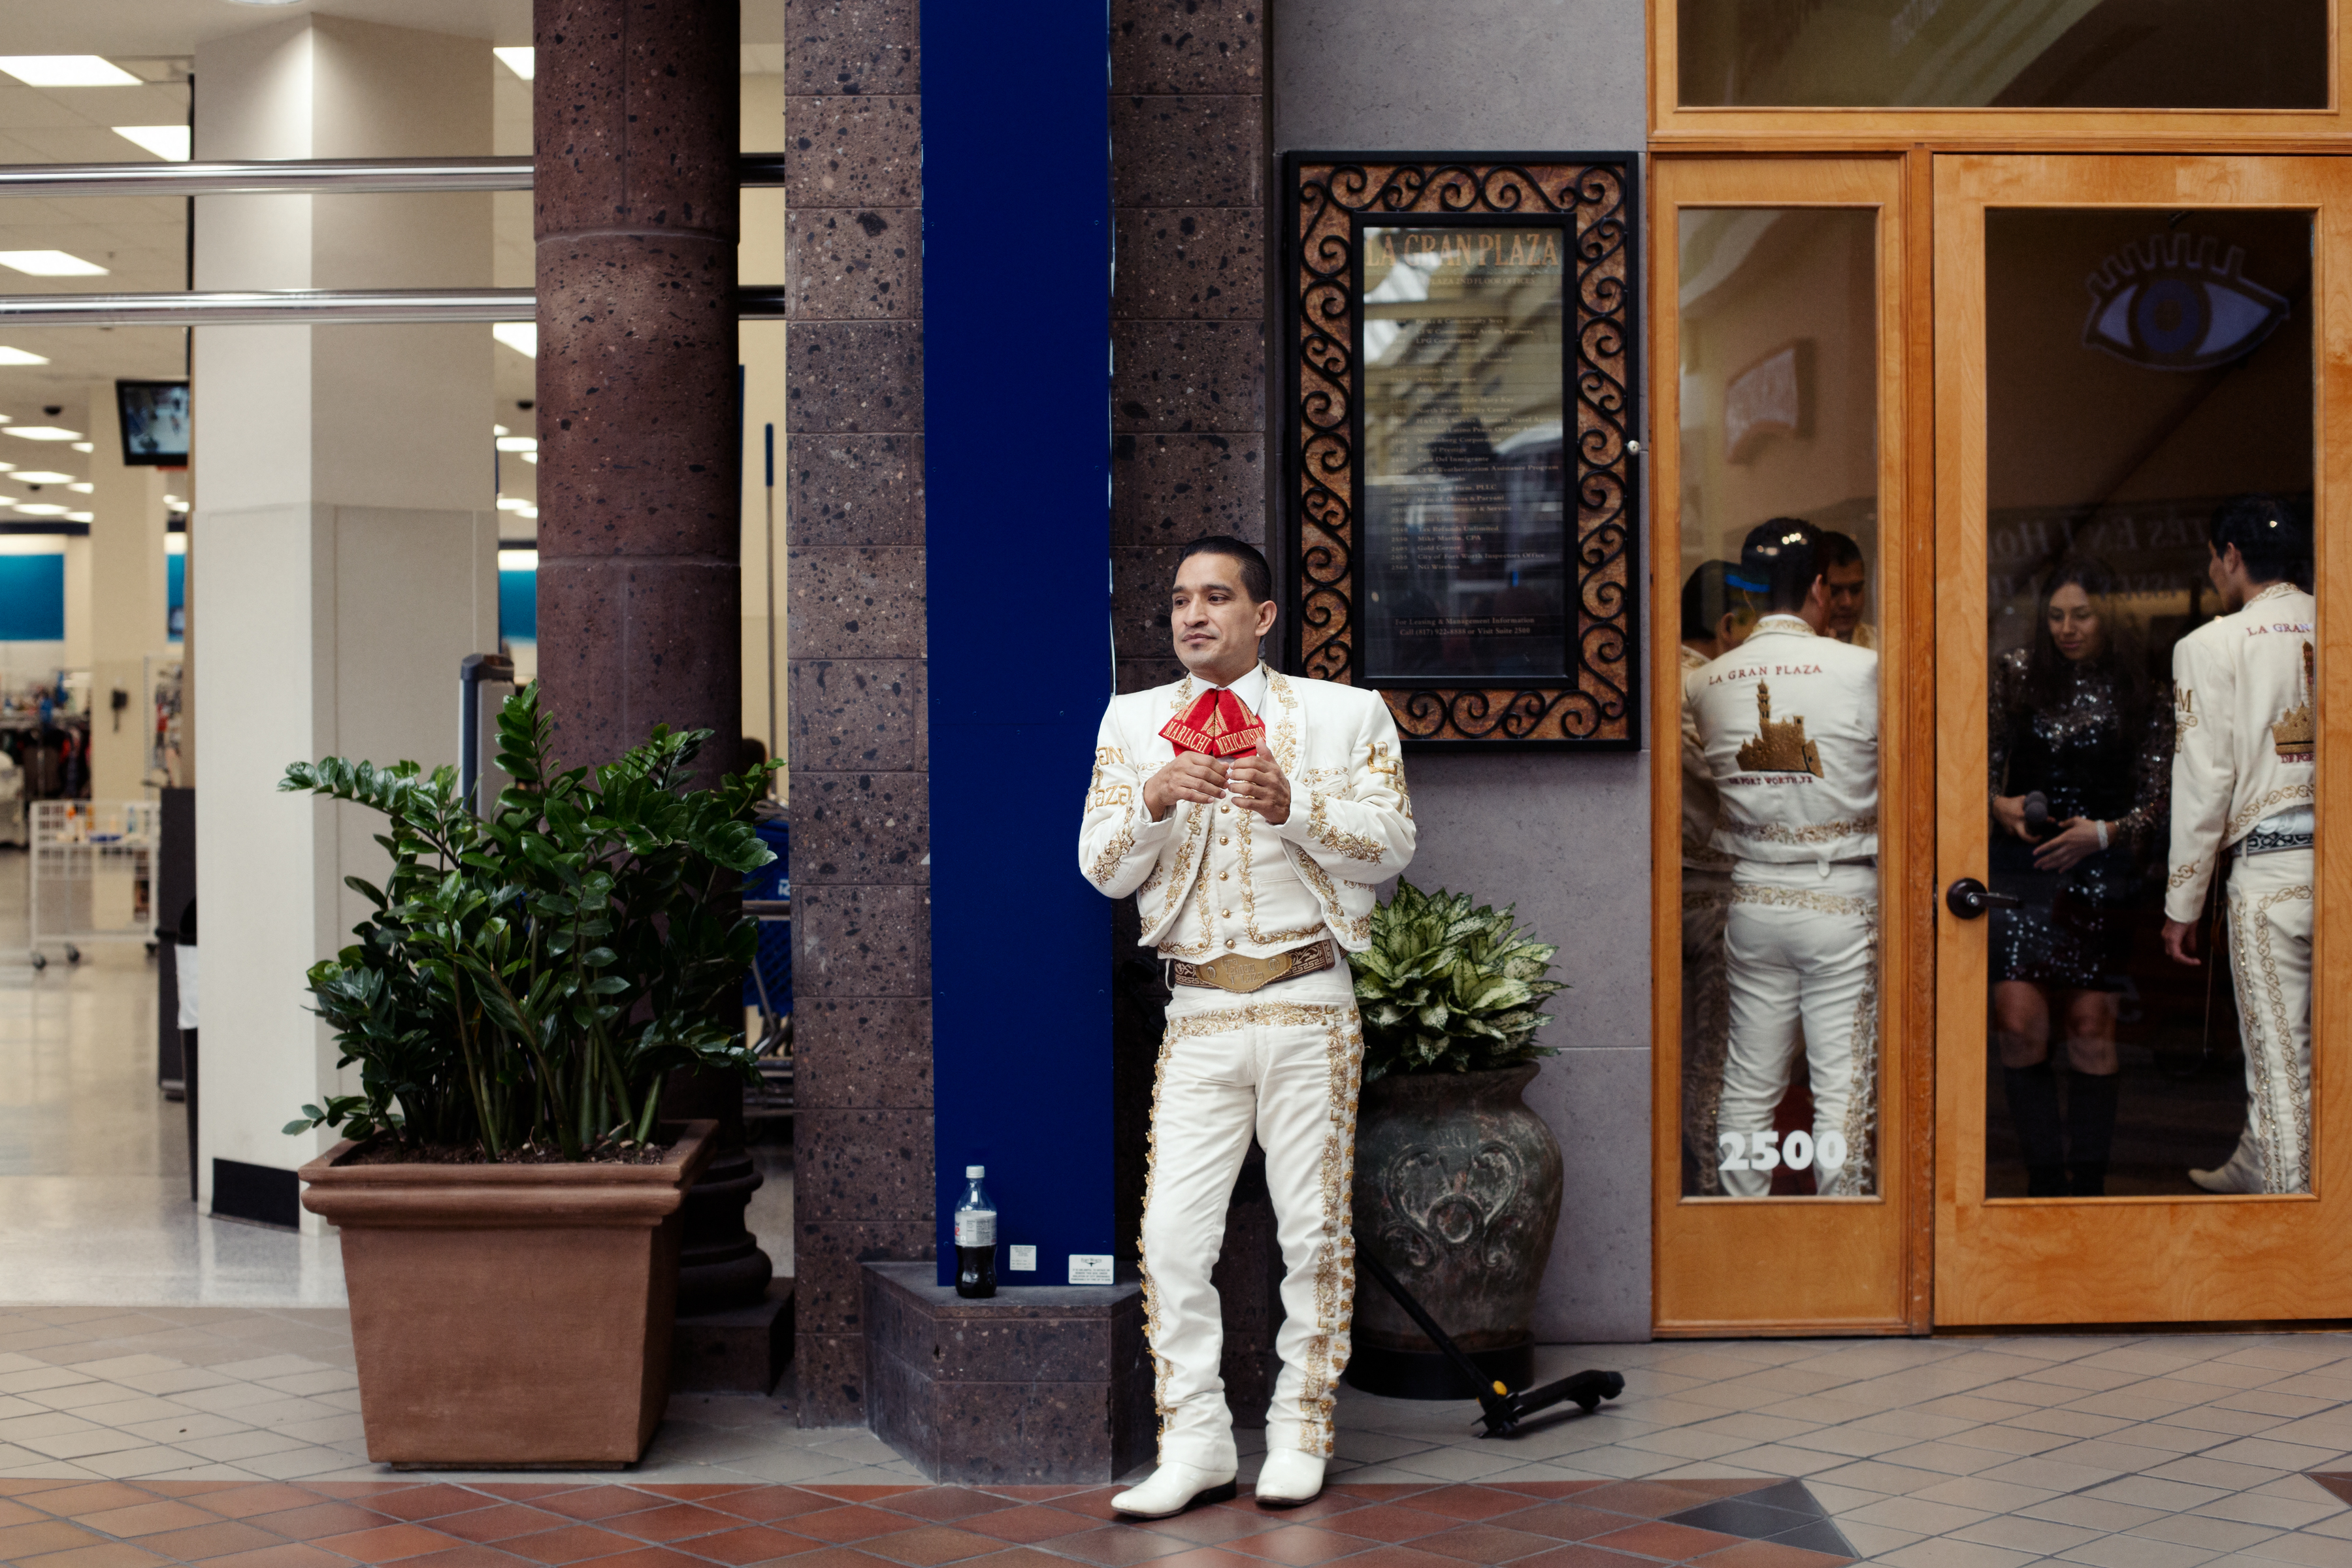 A mariachi stands outside La Gran Plaza mall. The mariachi outfits are custom made for the mall.